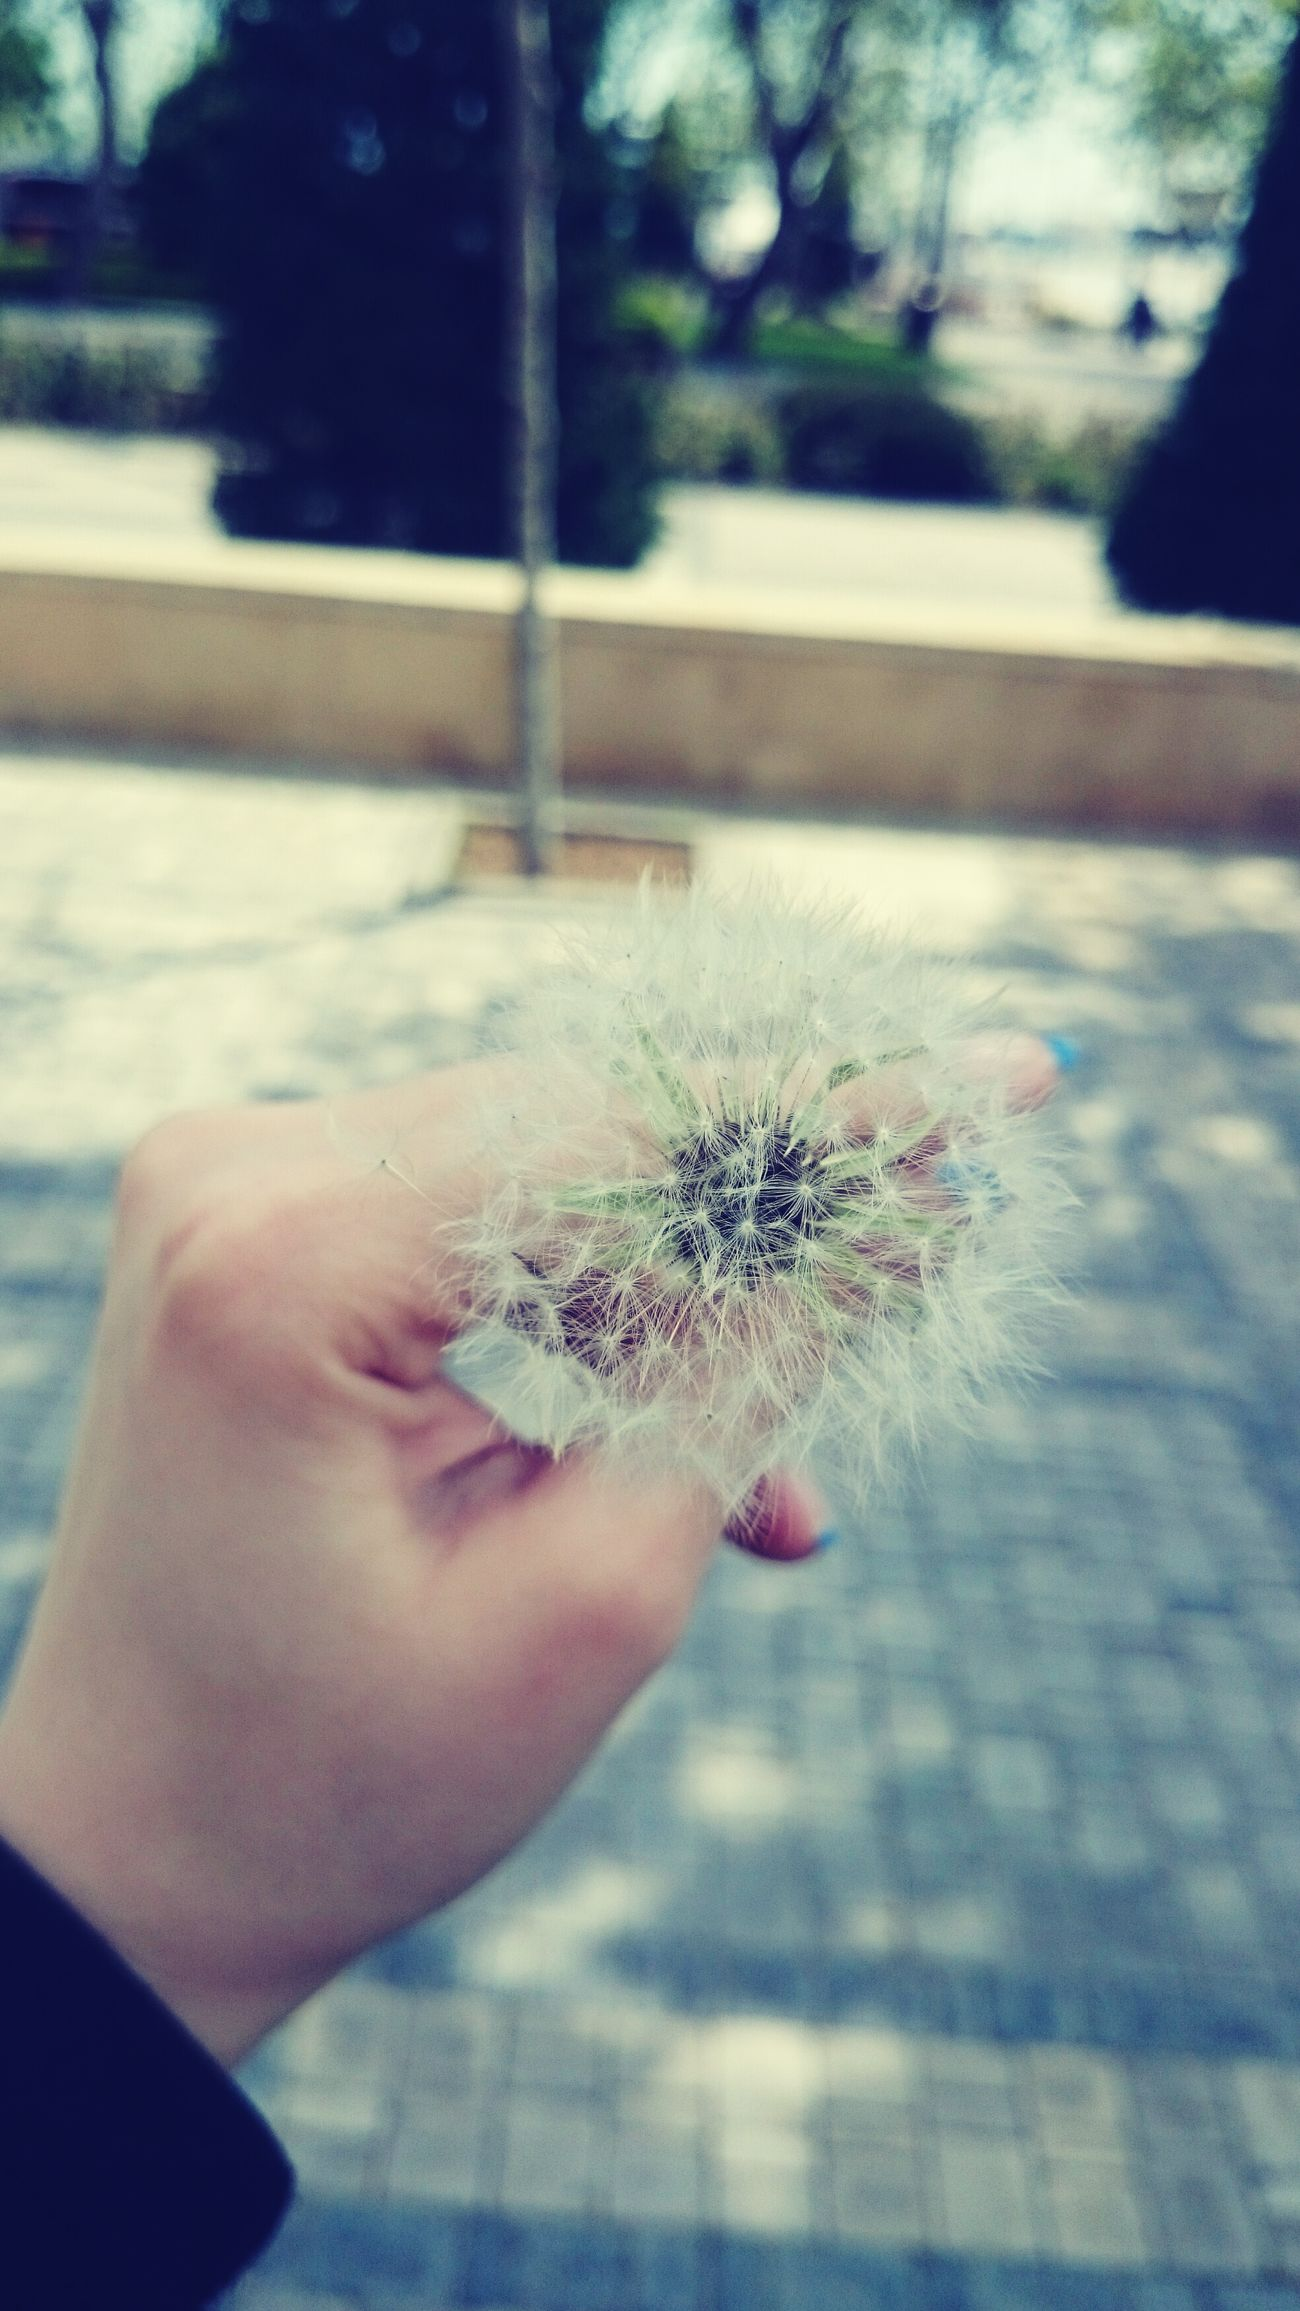 Lovely Dandelion Dandelion In Spring Dandelionfluff Dandelion In My Hand😊 Dandelion Addiction